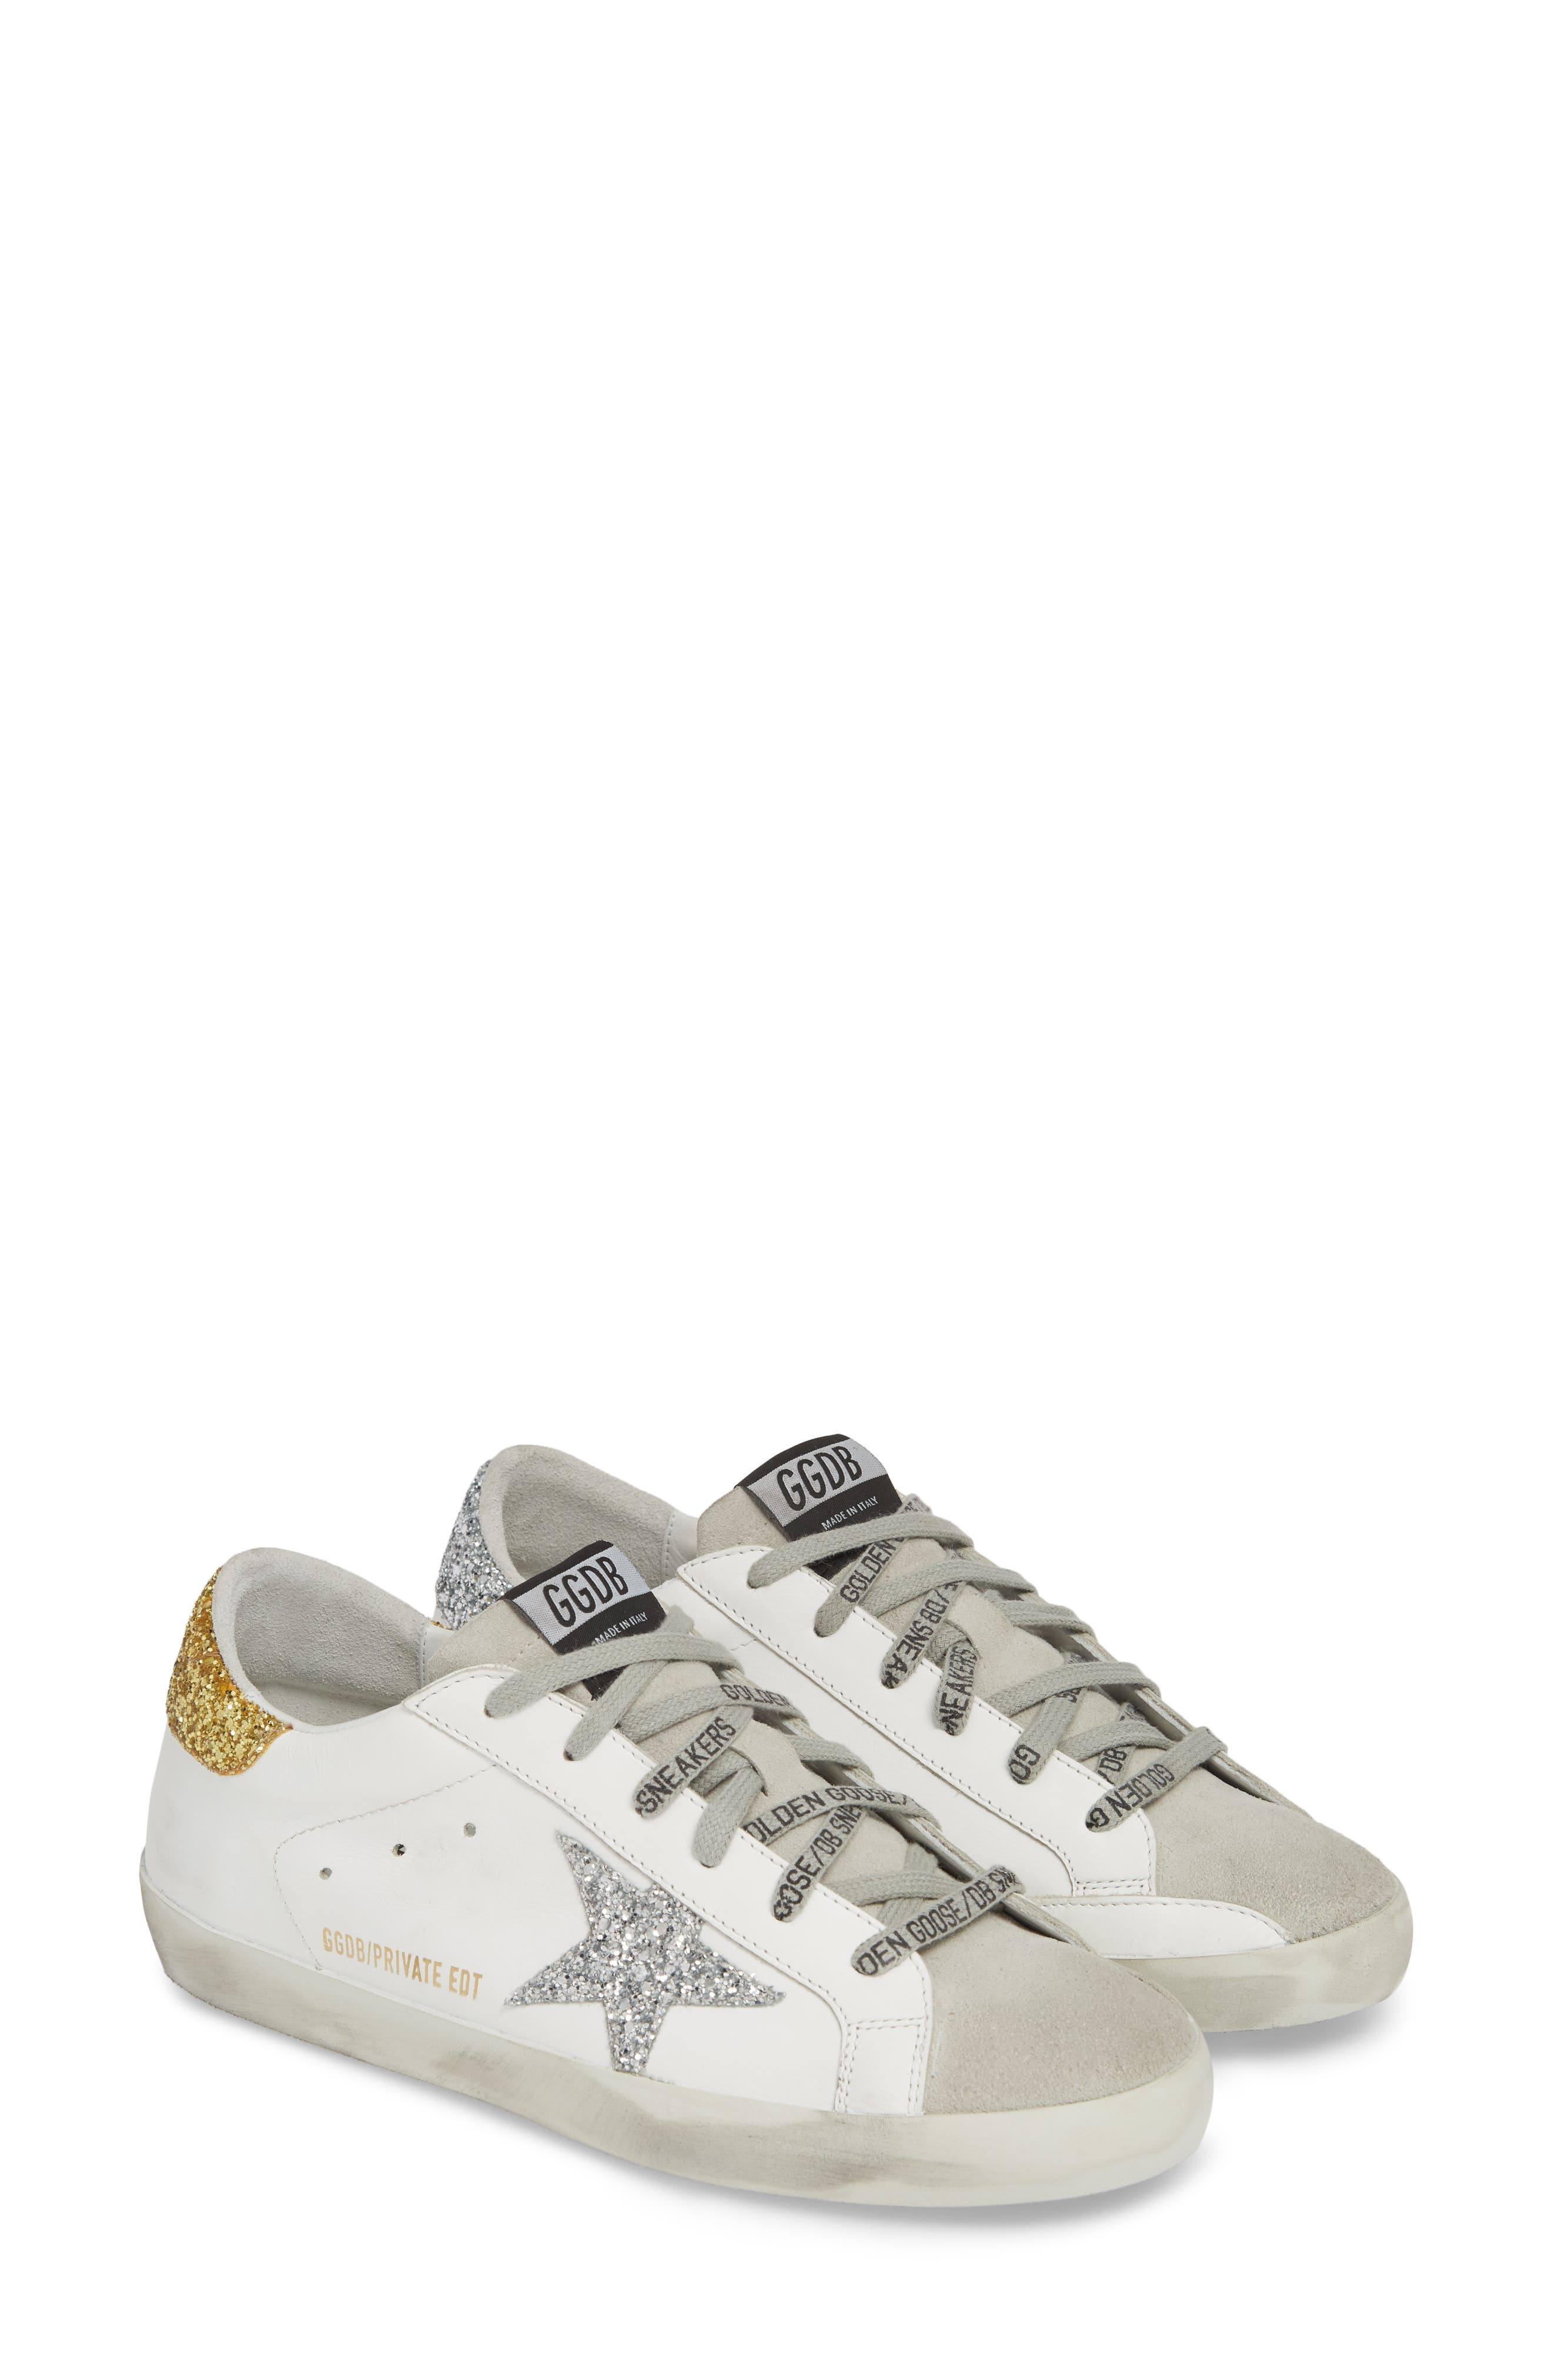 Superstar Low Top Sneaker,                             Alternate thumbnail 2, color,                             WHITE/ GOLD/ SILVER